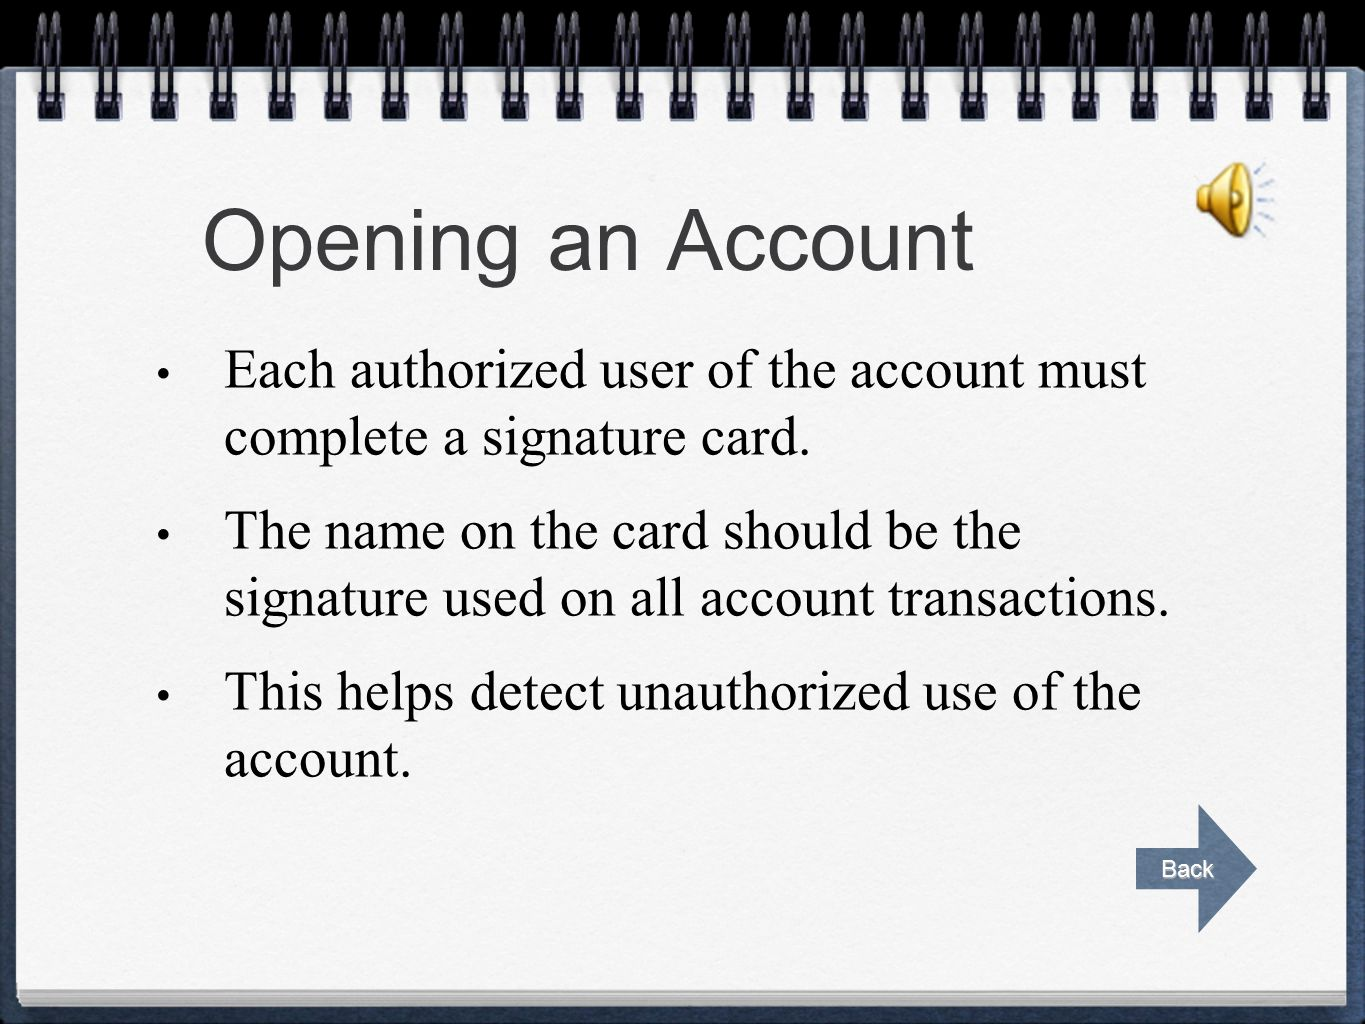 Checking Account Documents Click on any of the following documents to view the information. Go back to the lesson when finished. Opening an Account Op